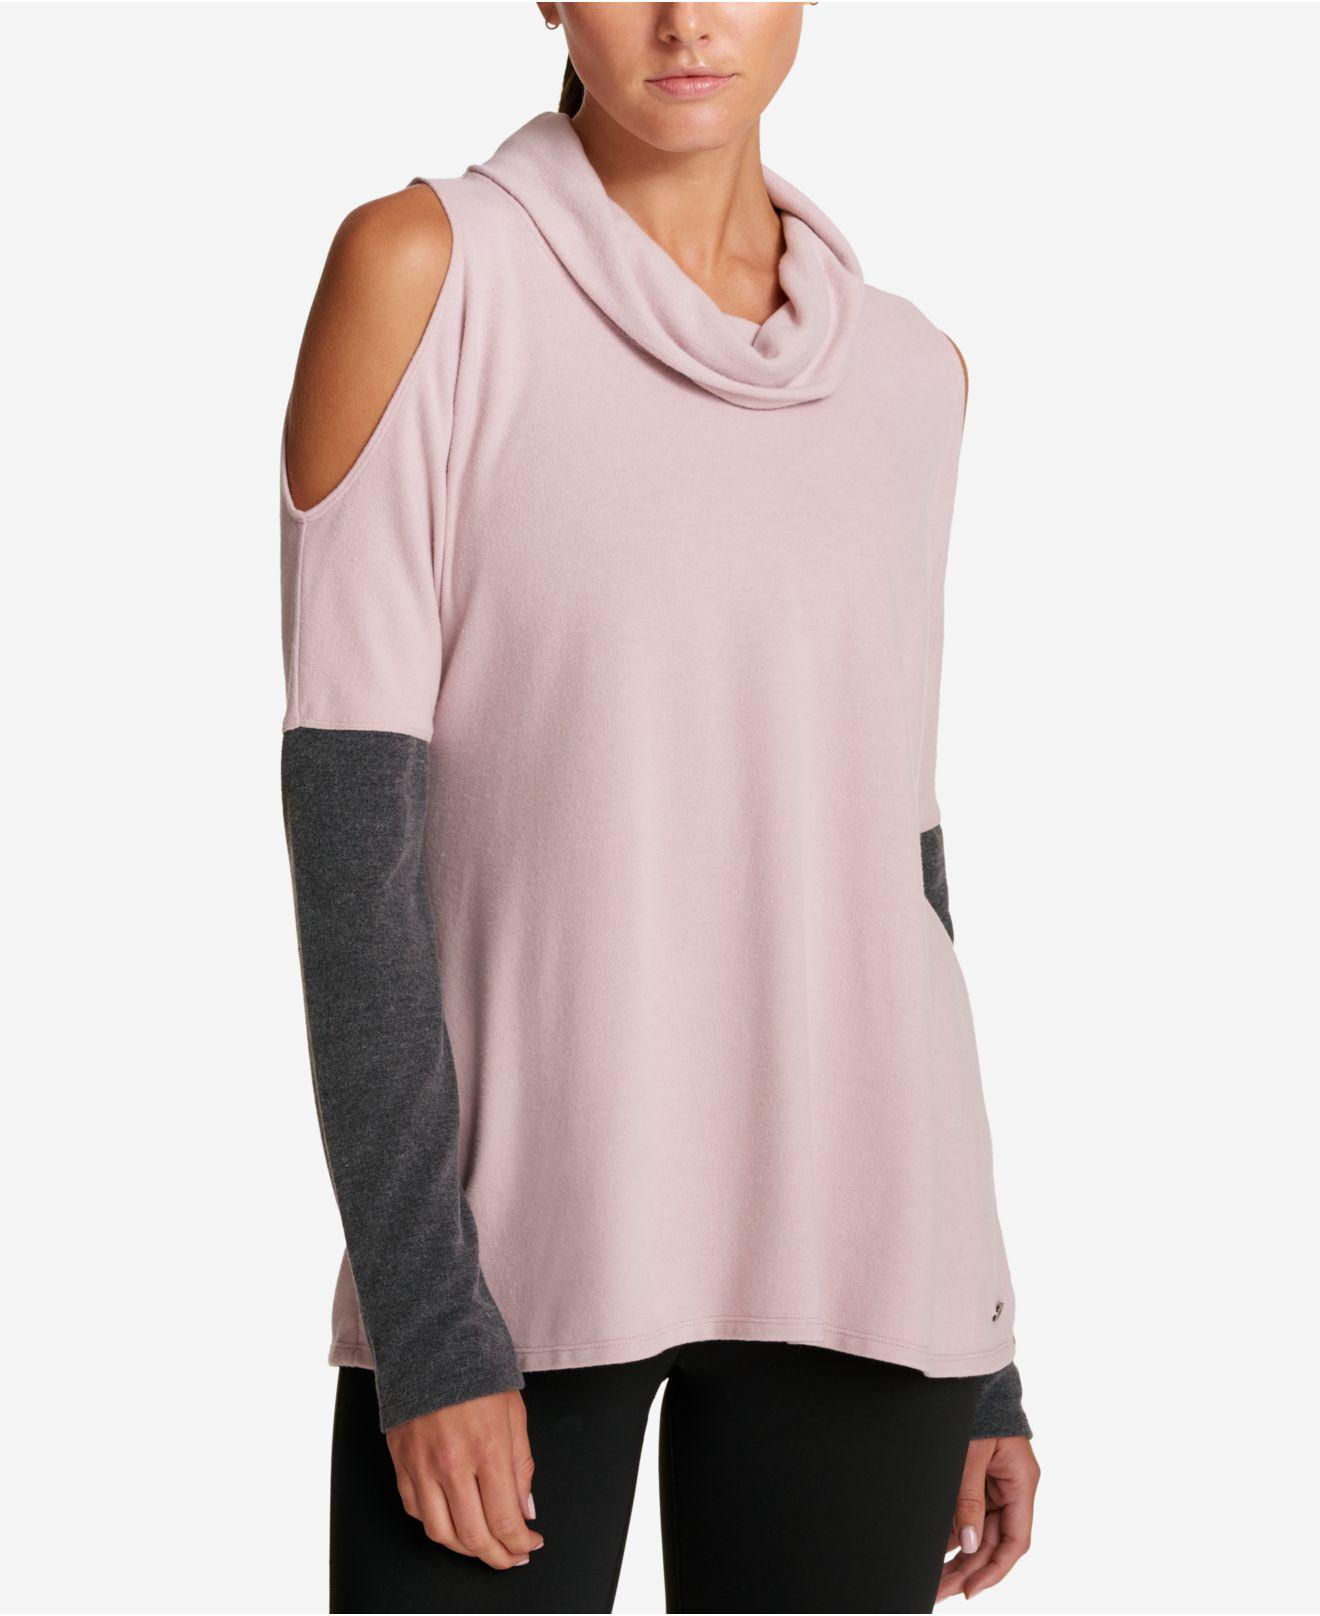 ff9401ca9479a1 Lyst - DKNY Brushed Jersey Cold Shoulder Top in Pink